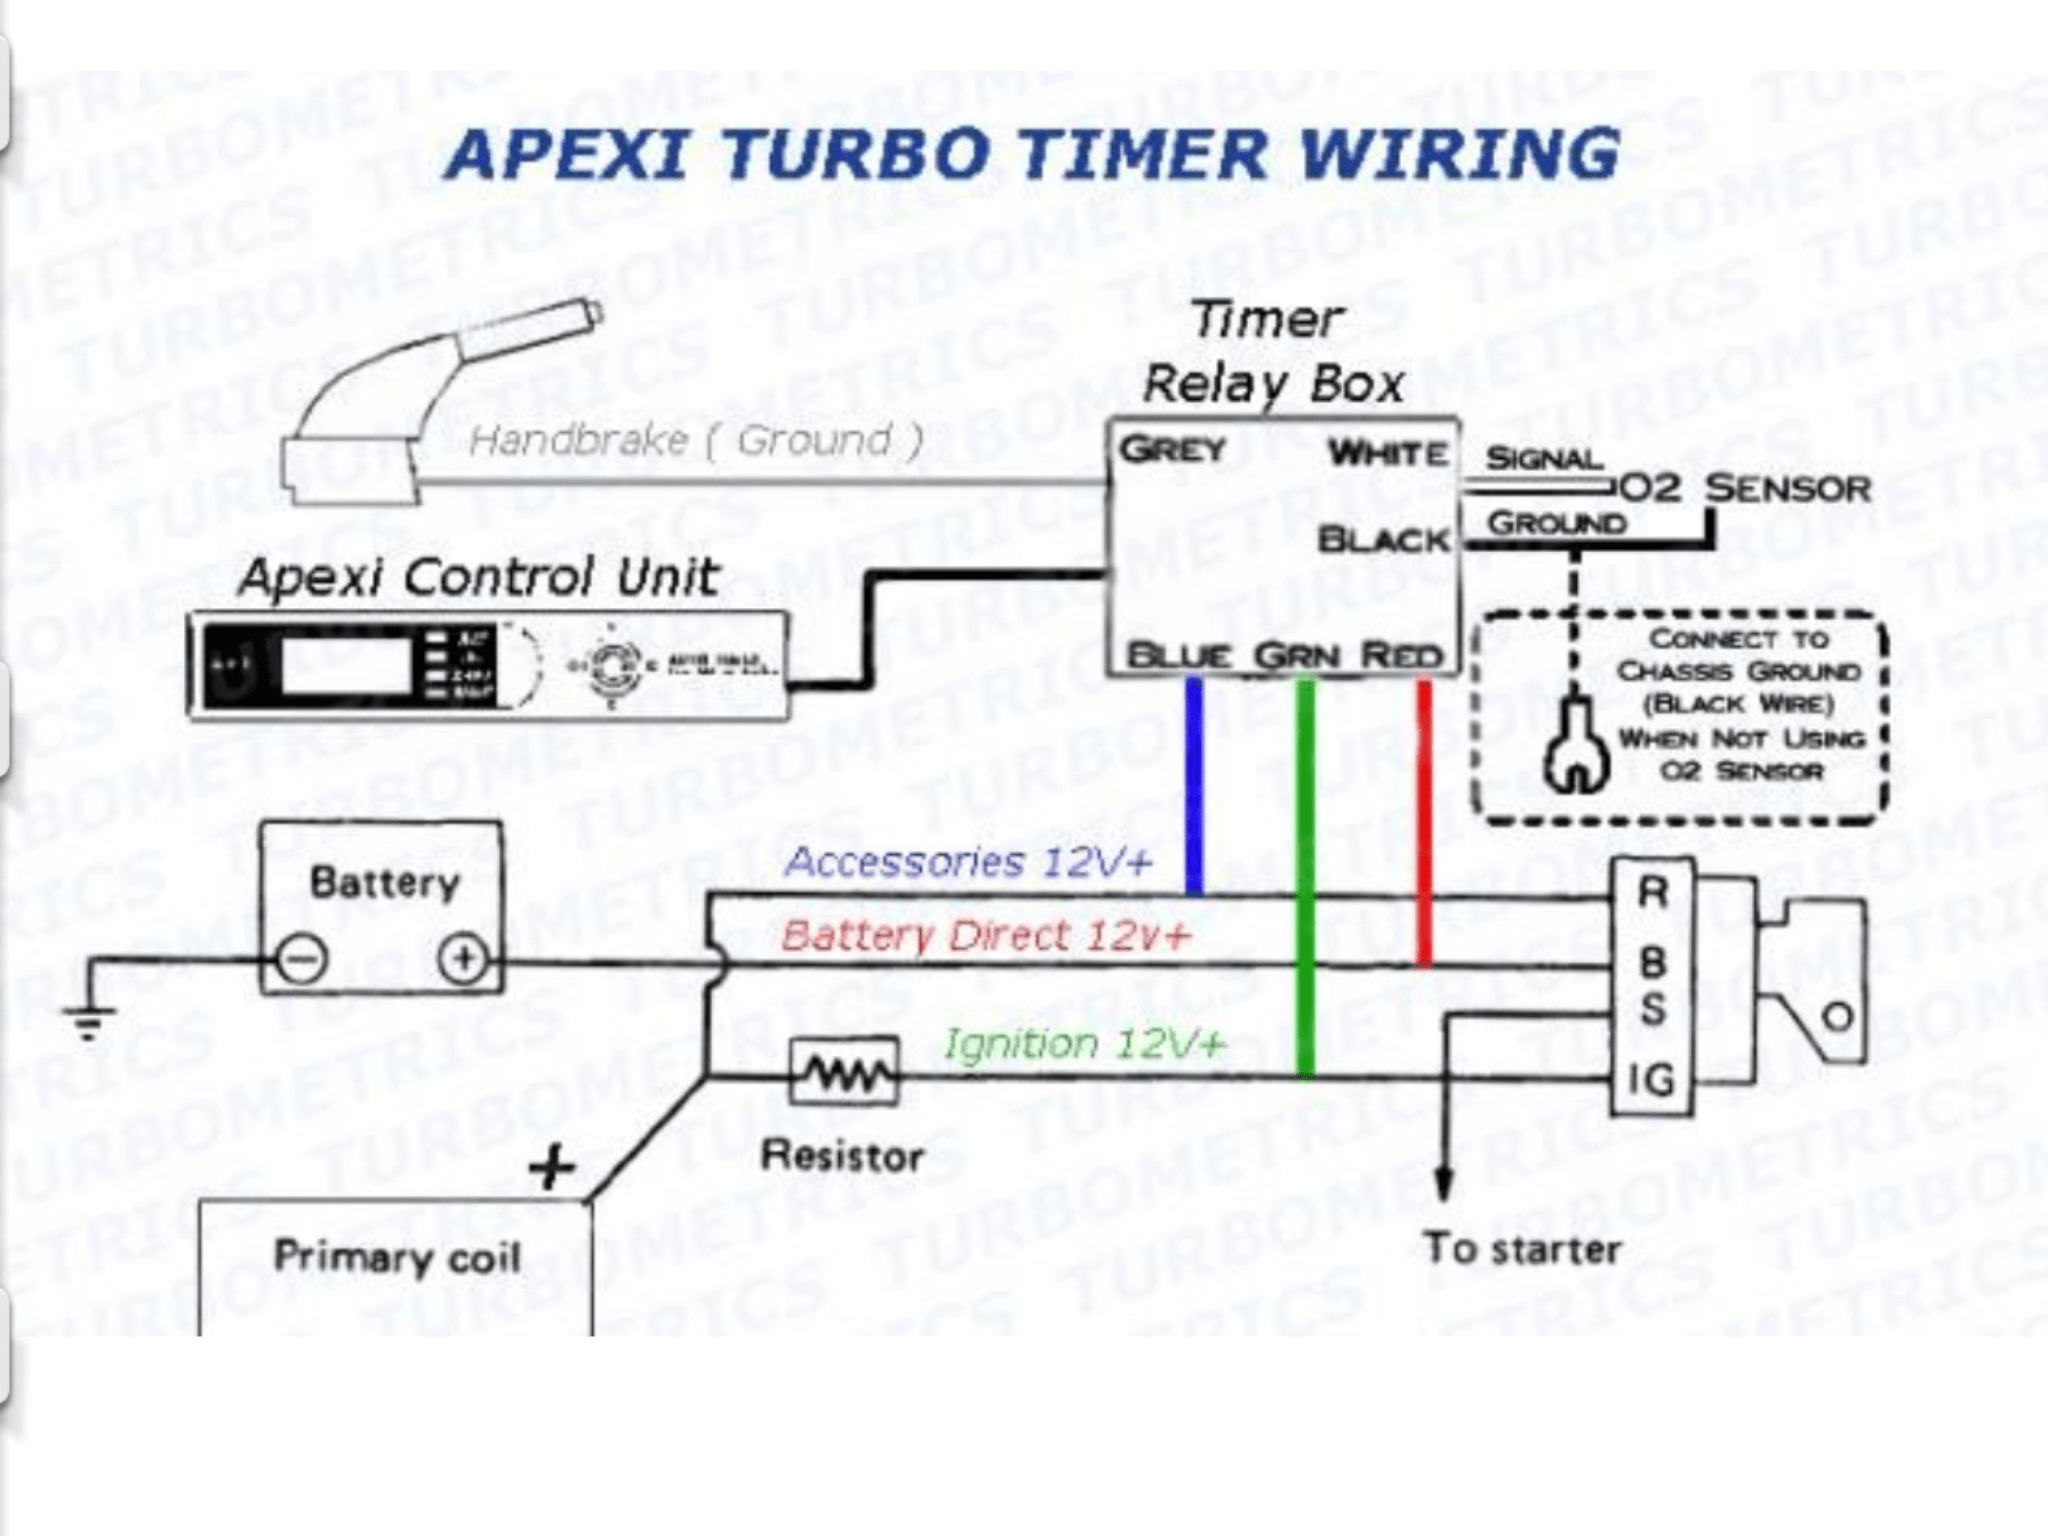 bogaard turbo timer wiring diagram yamaha 350 warrior install the ranger station forums